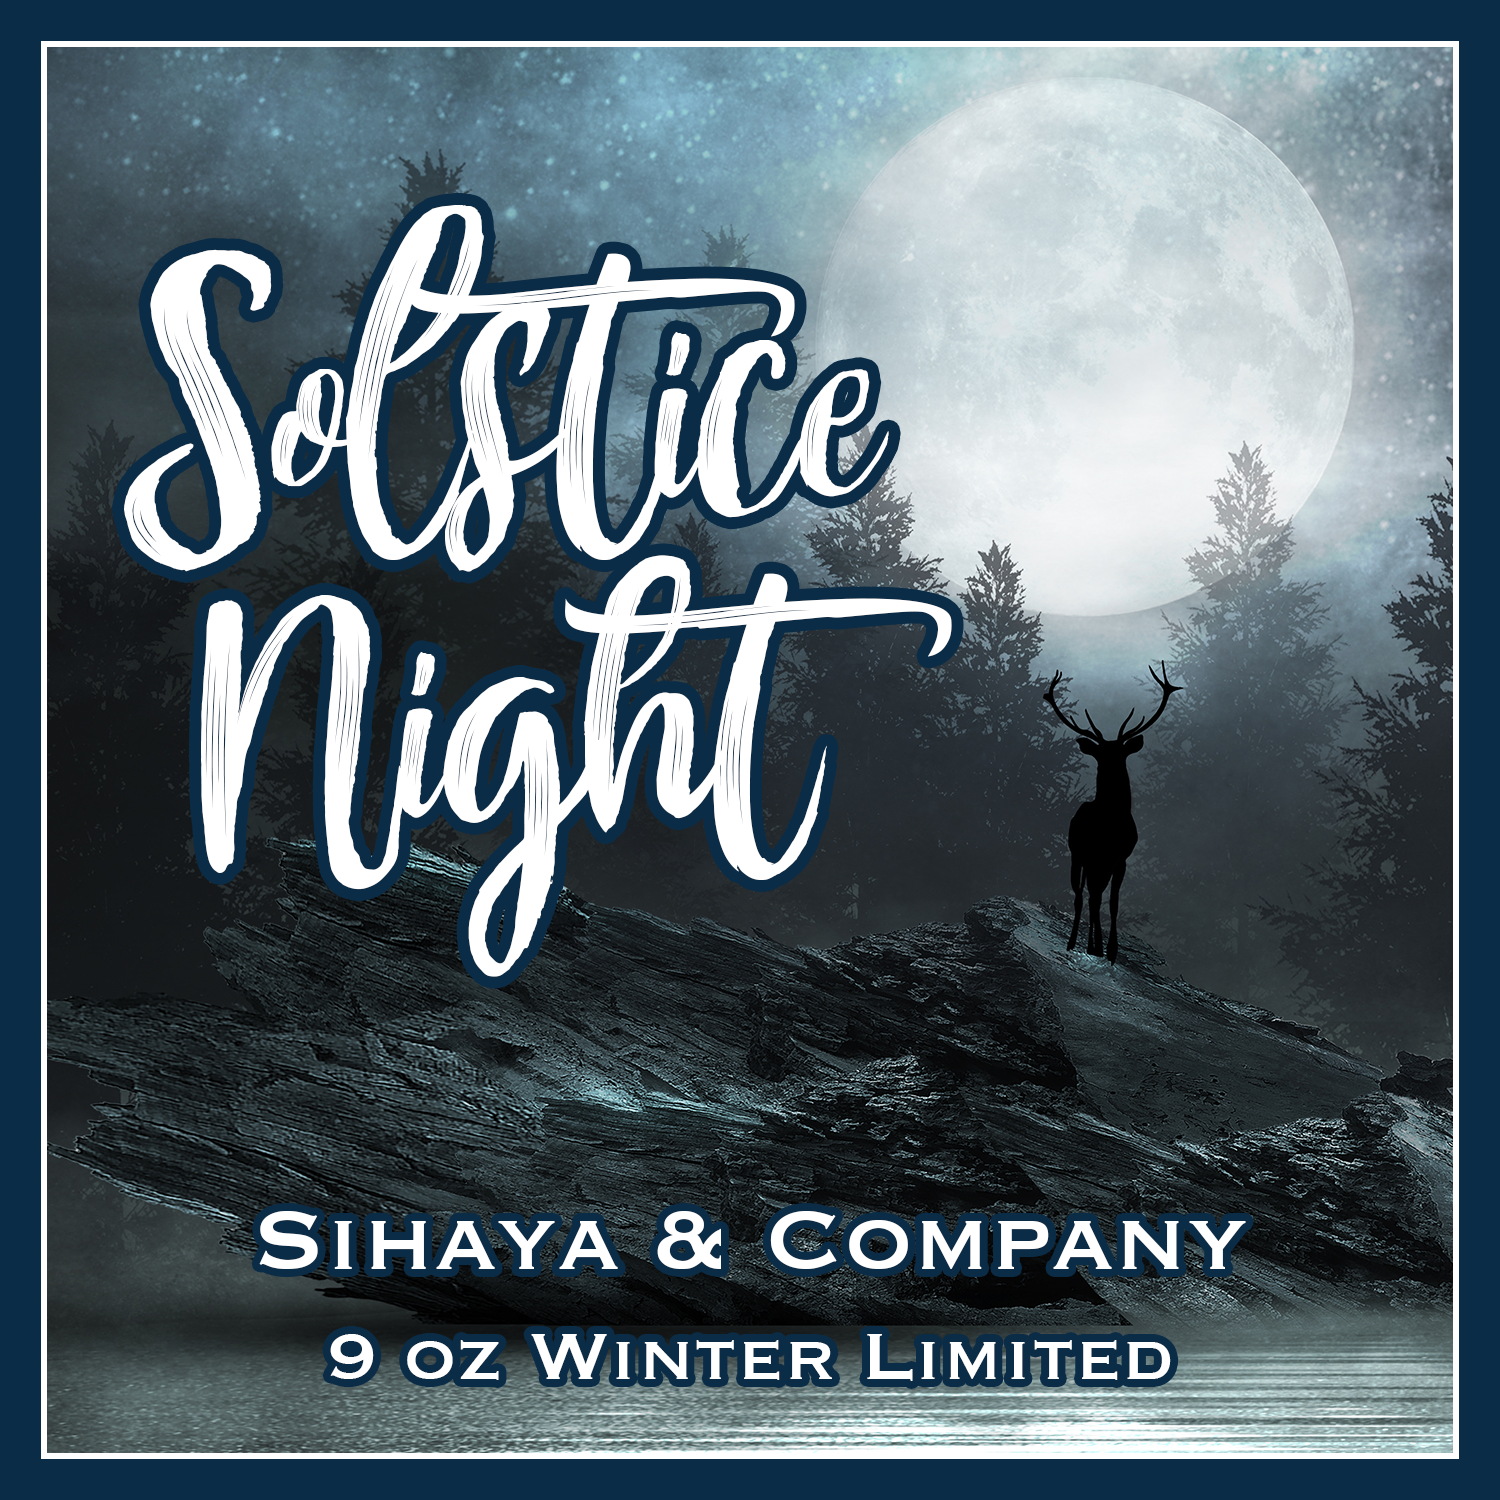 Winter Tiered Limited: SOLSTICE NIGHT